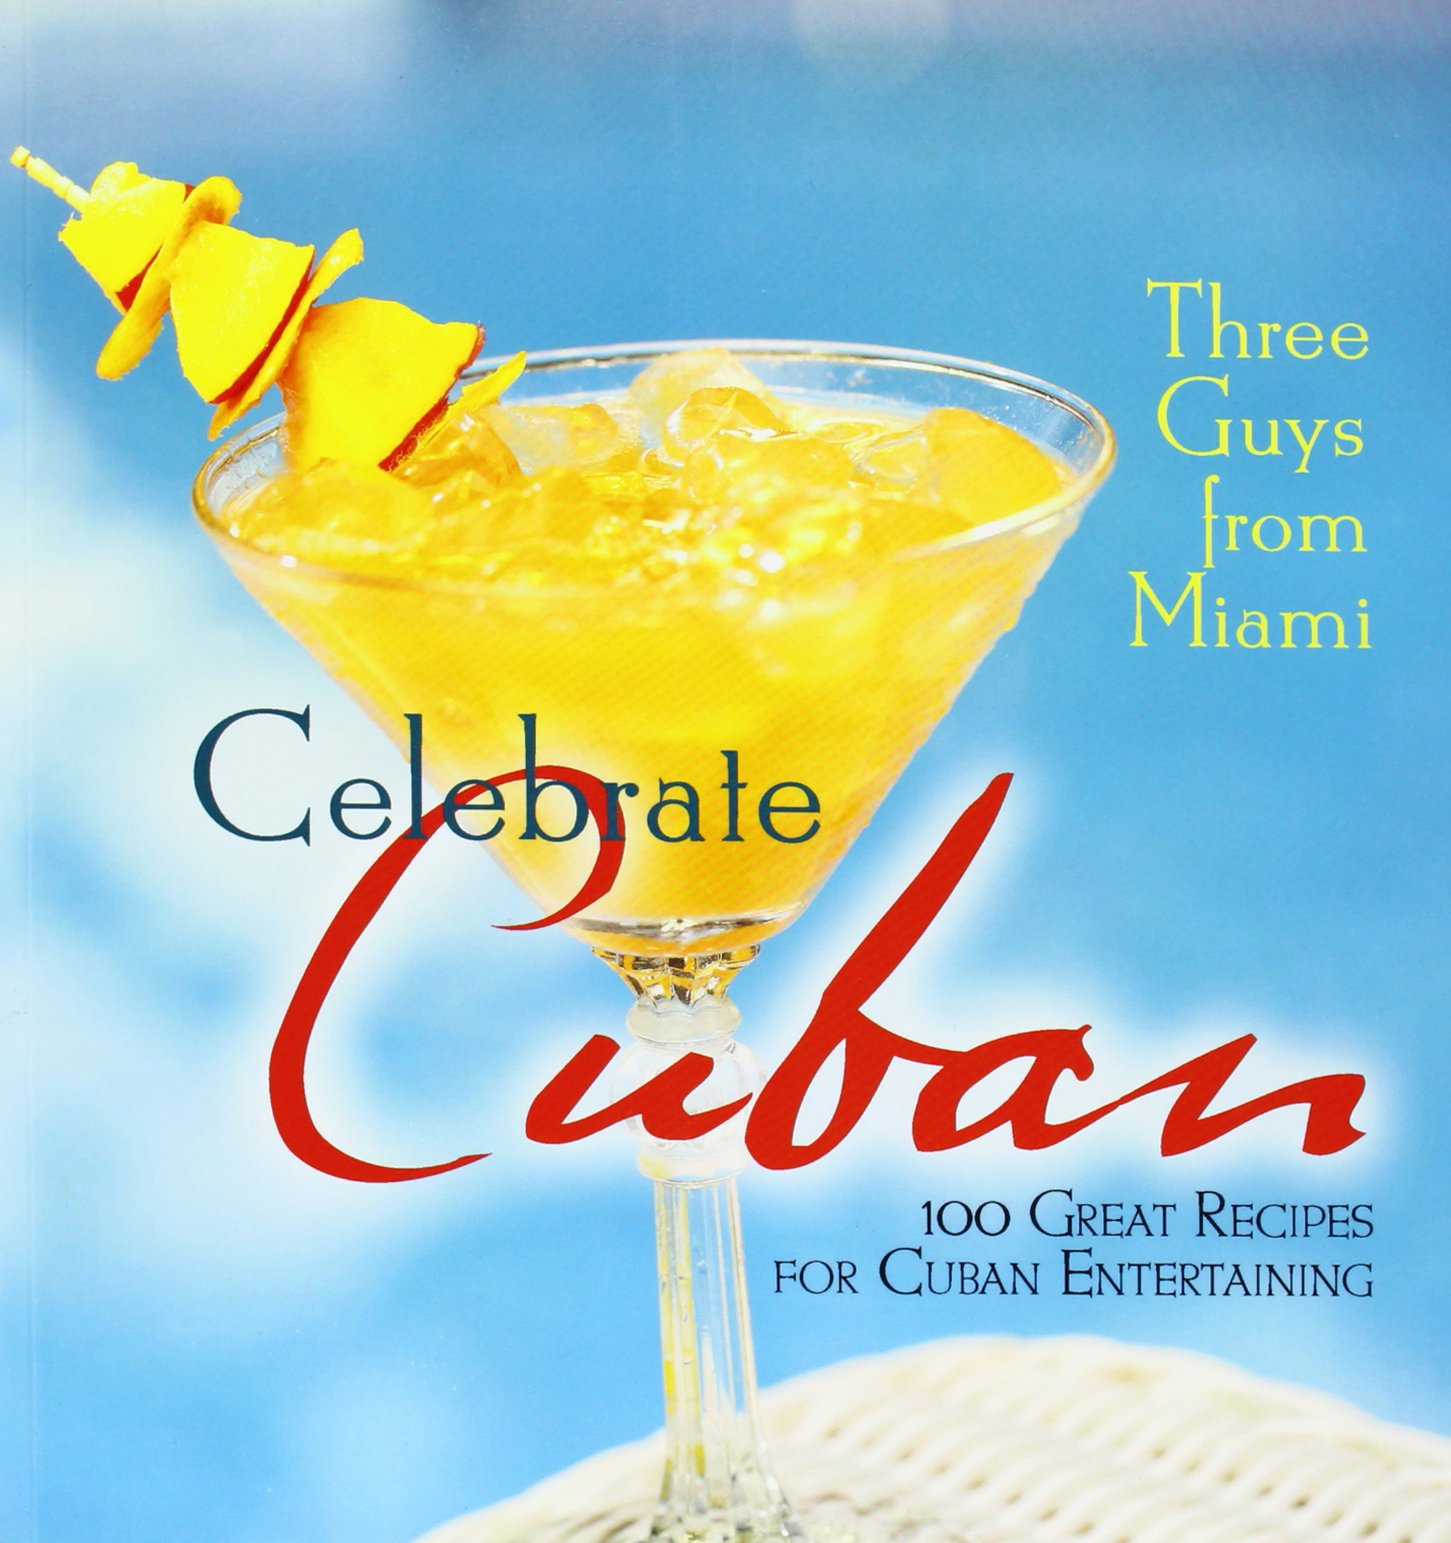 Read Online Three Guys from Miami Celebrate Cuban (pb): 100 Great Recipes for Cuban Entertaining ebook